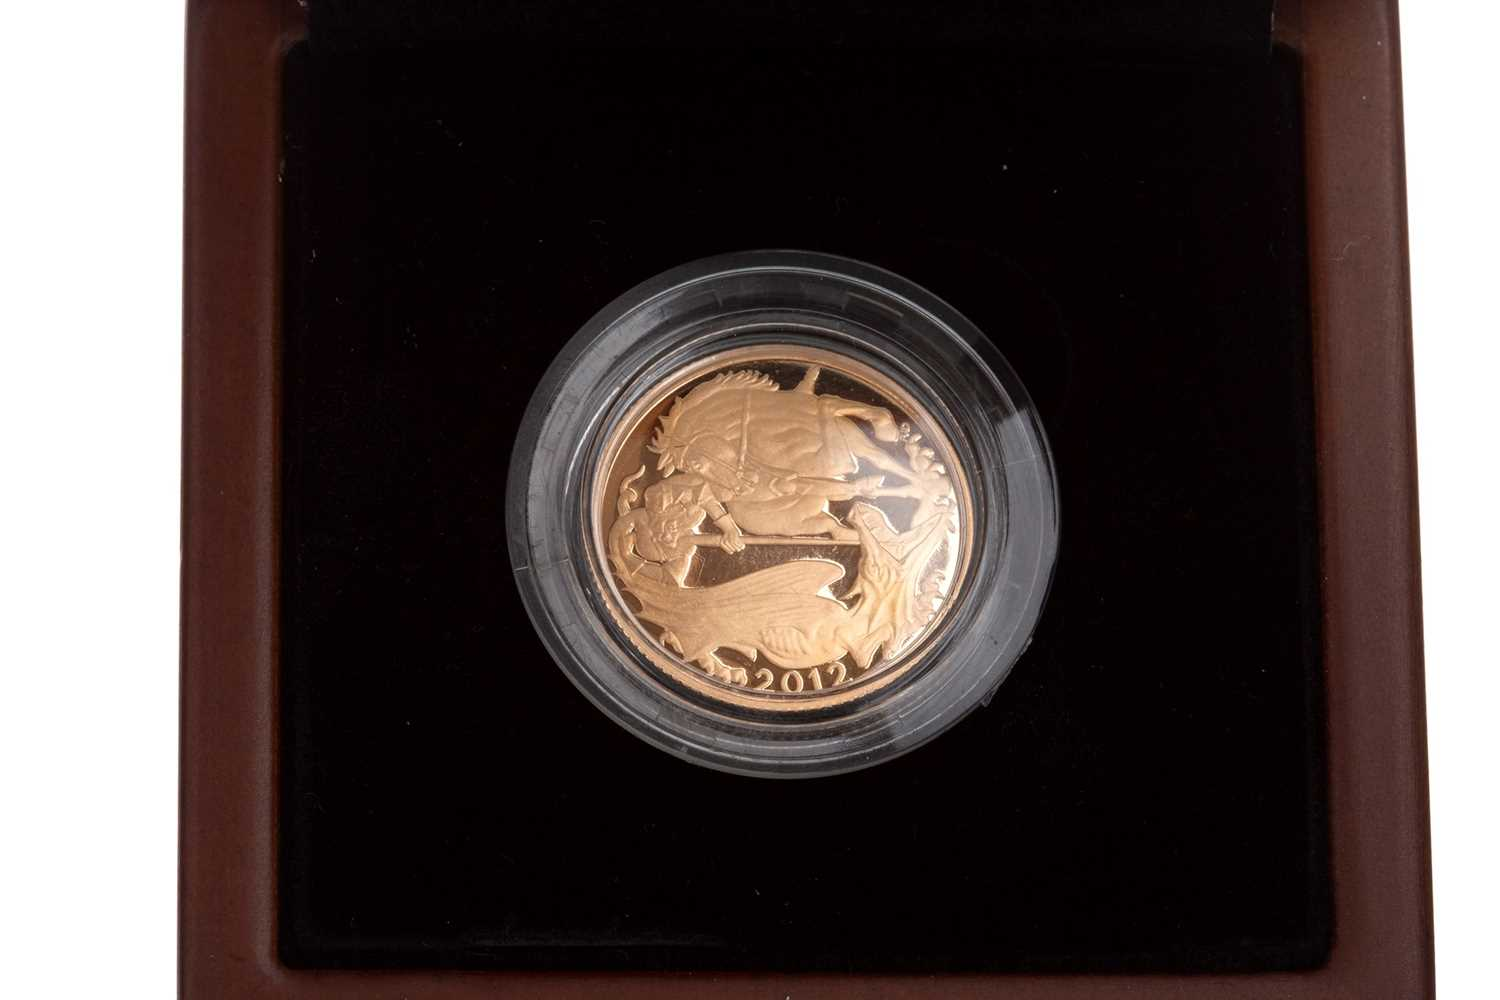 Lot 17-A THE ROYAL MINT 2012 SOVEREIGN